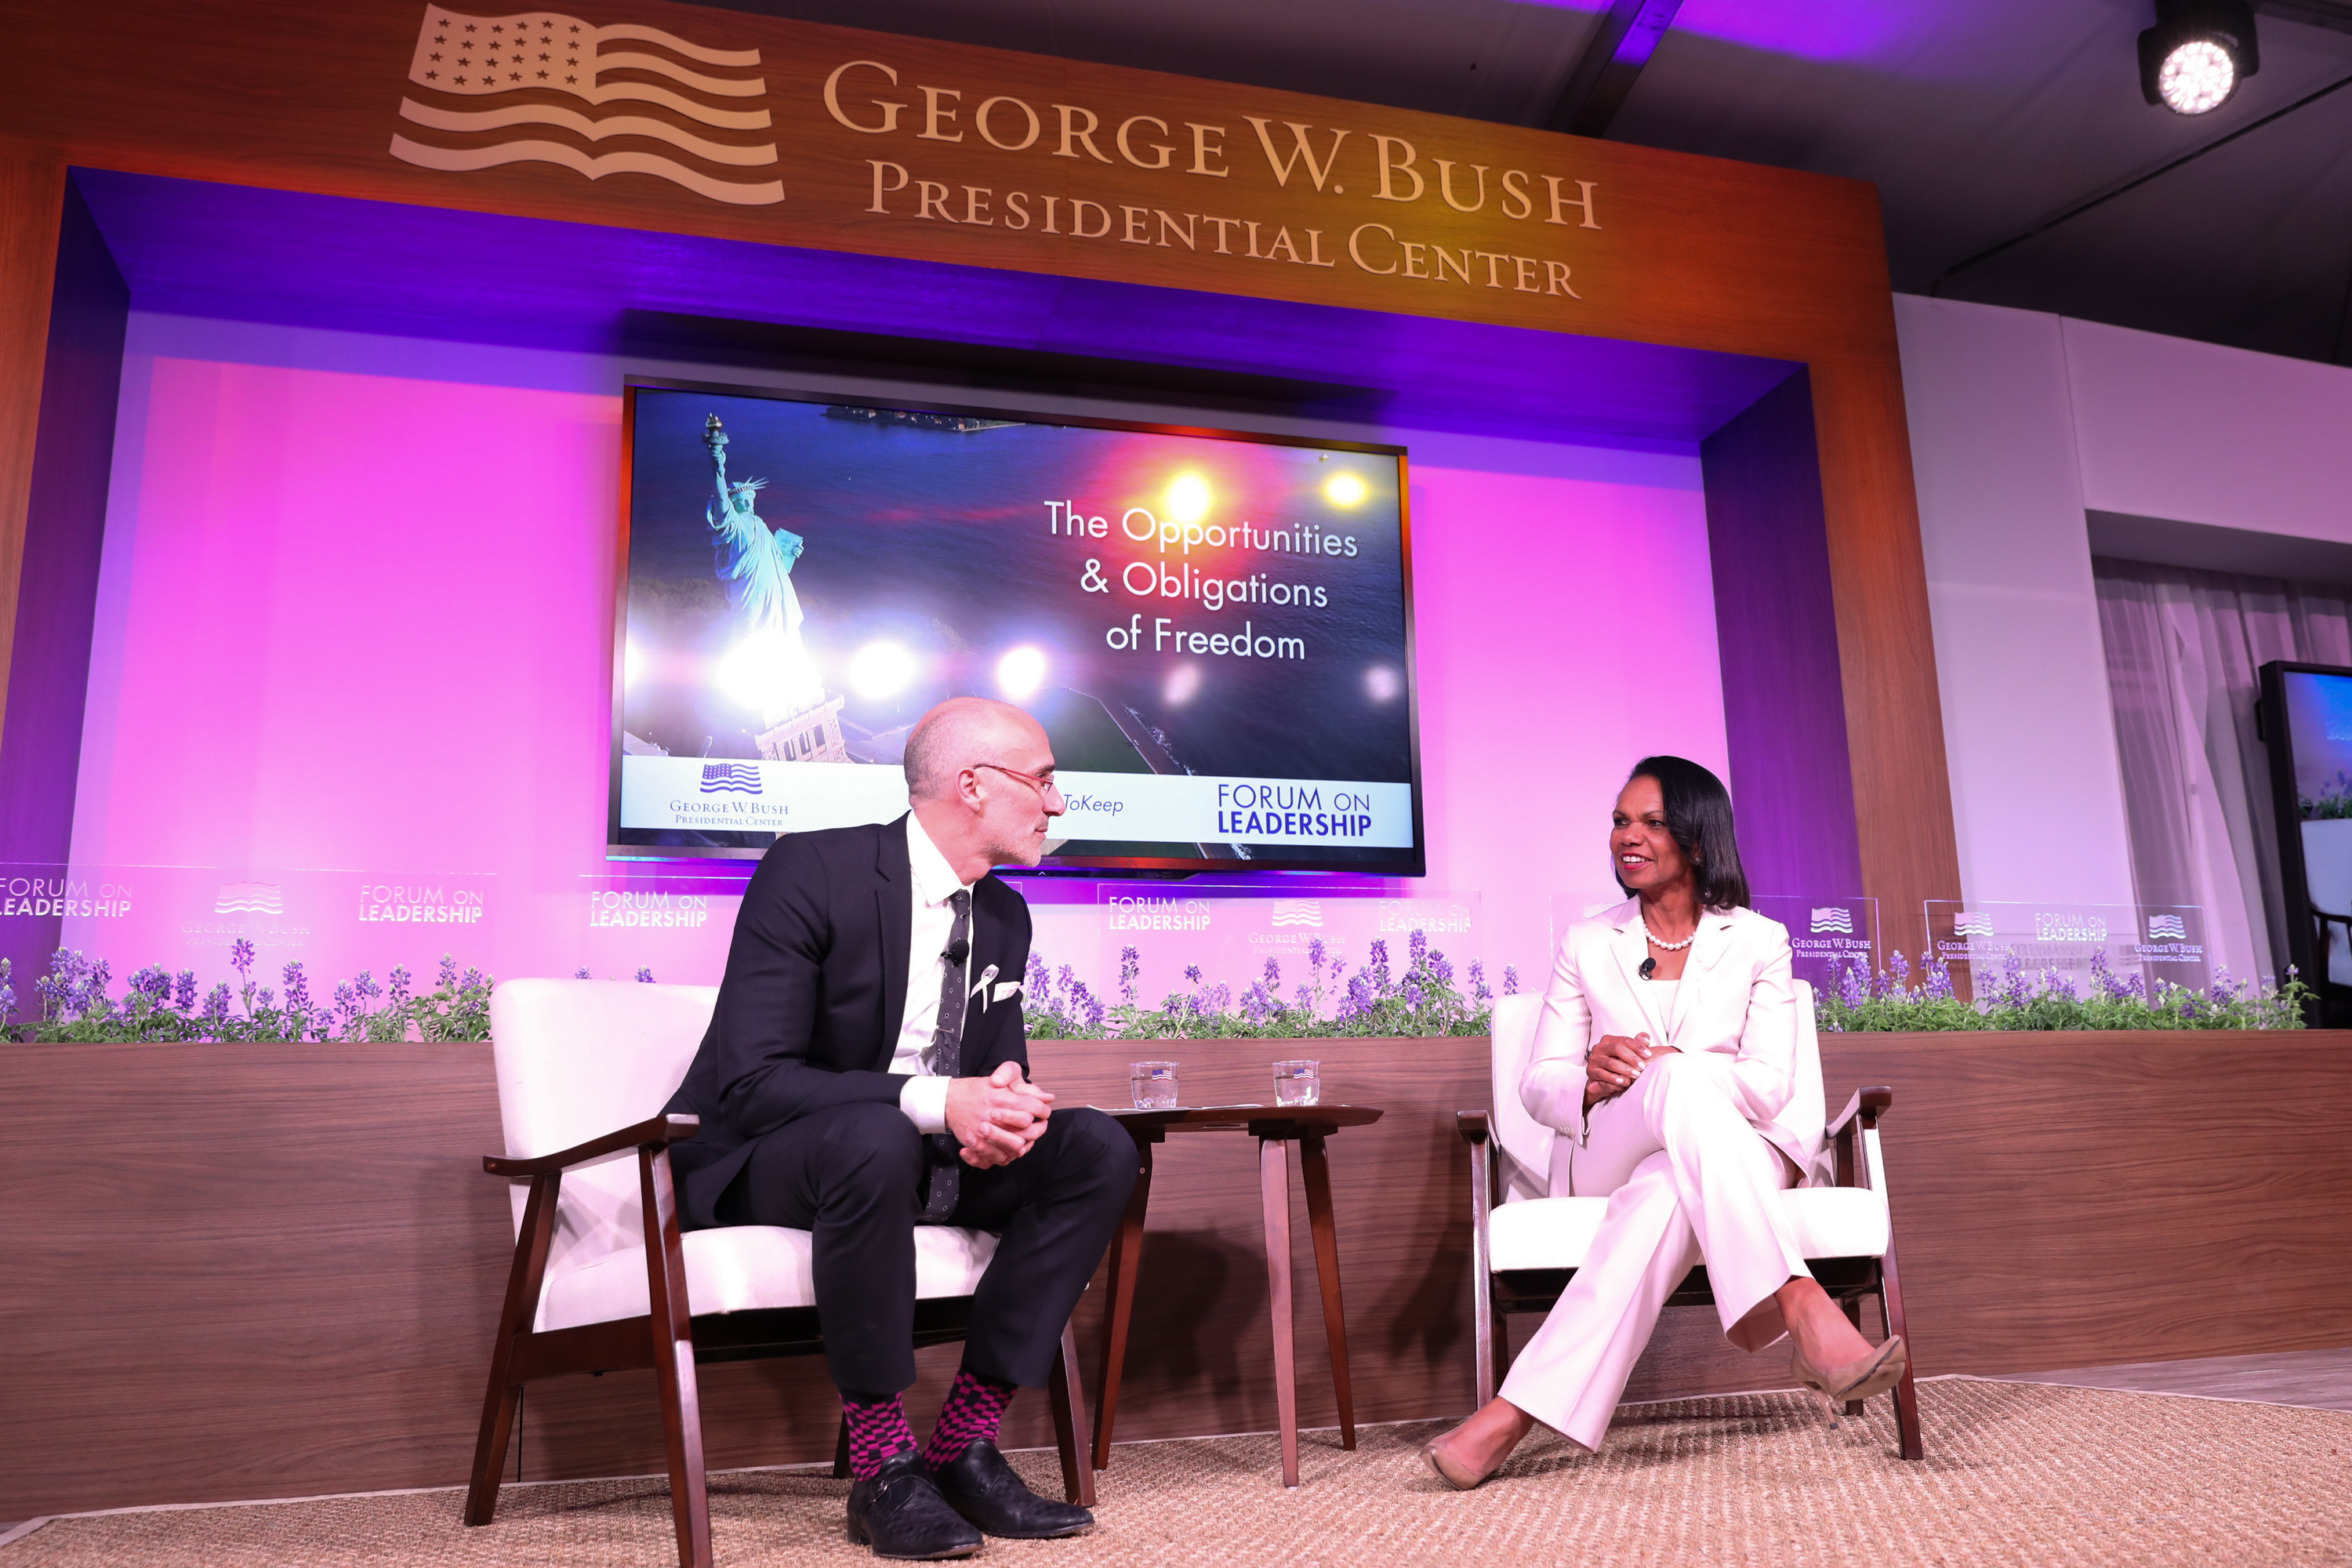 Condoleezza Rice: Why Principles Must Anchor Foreign Policy